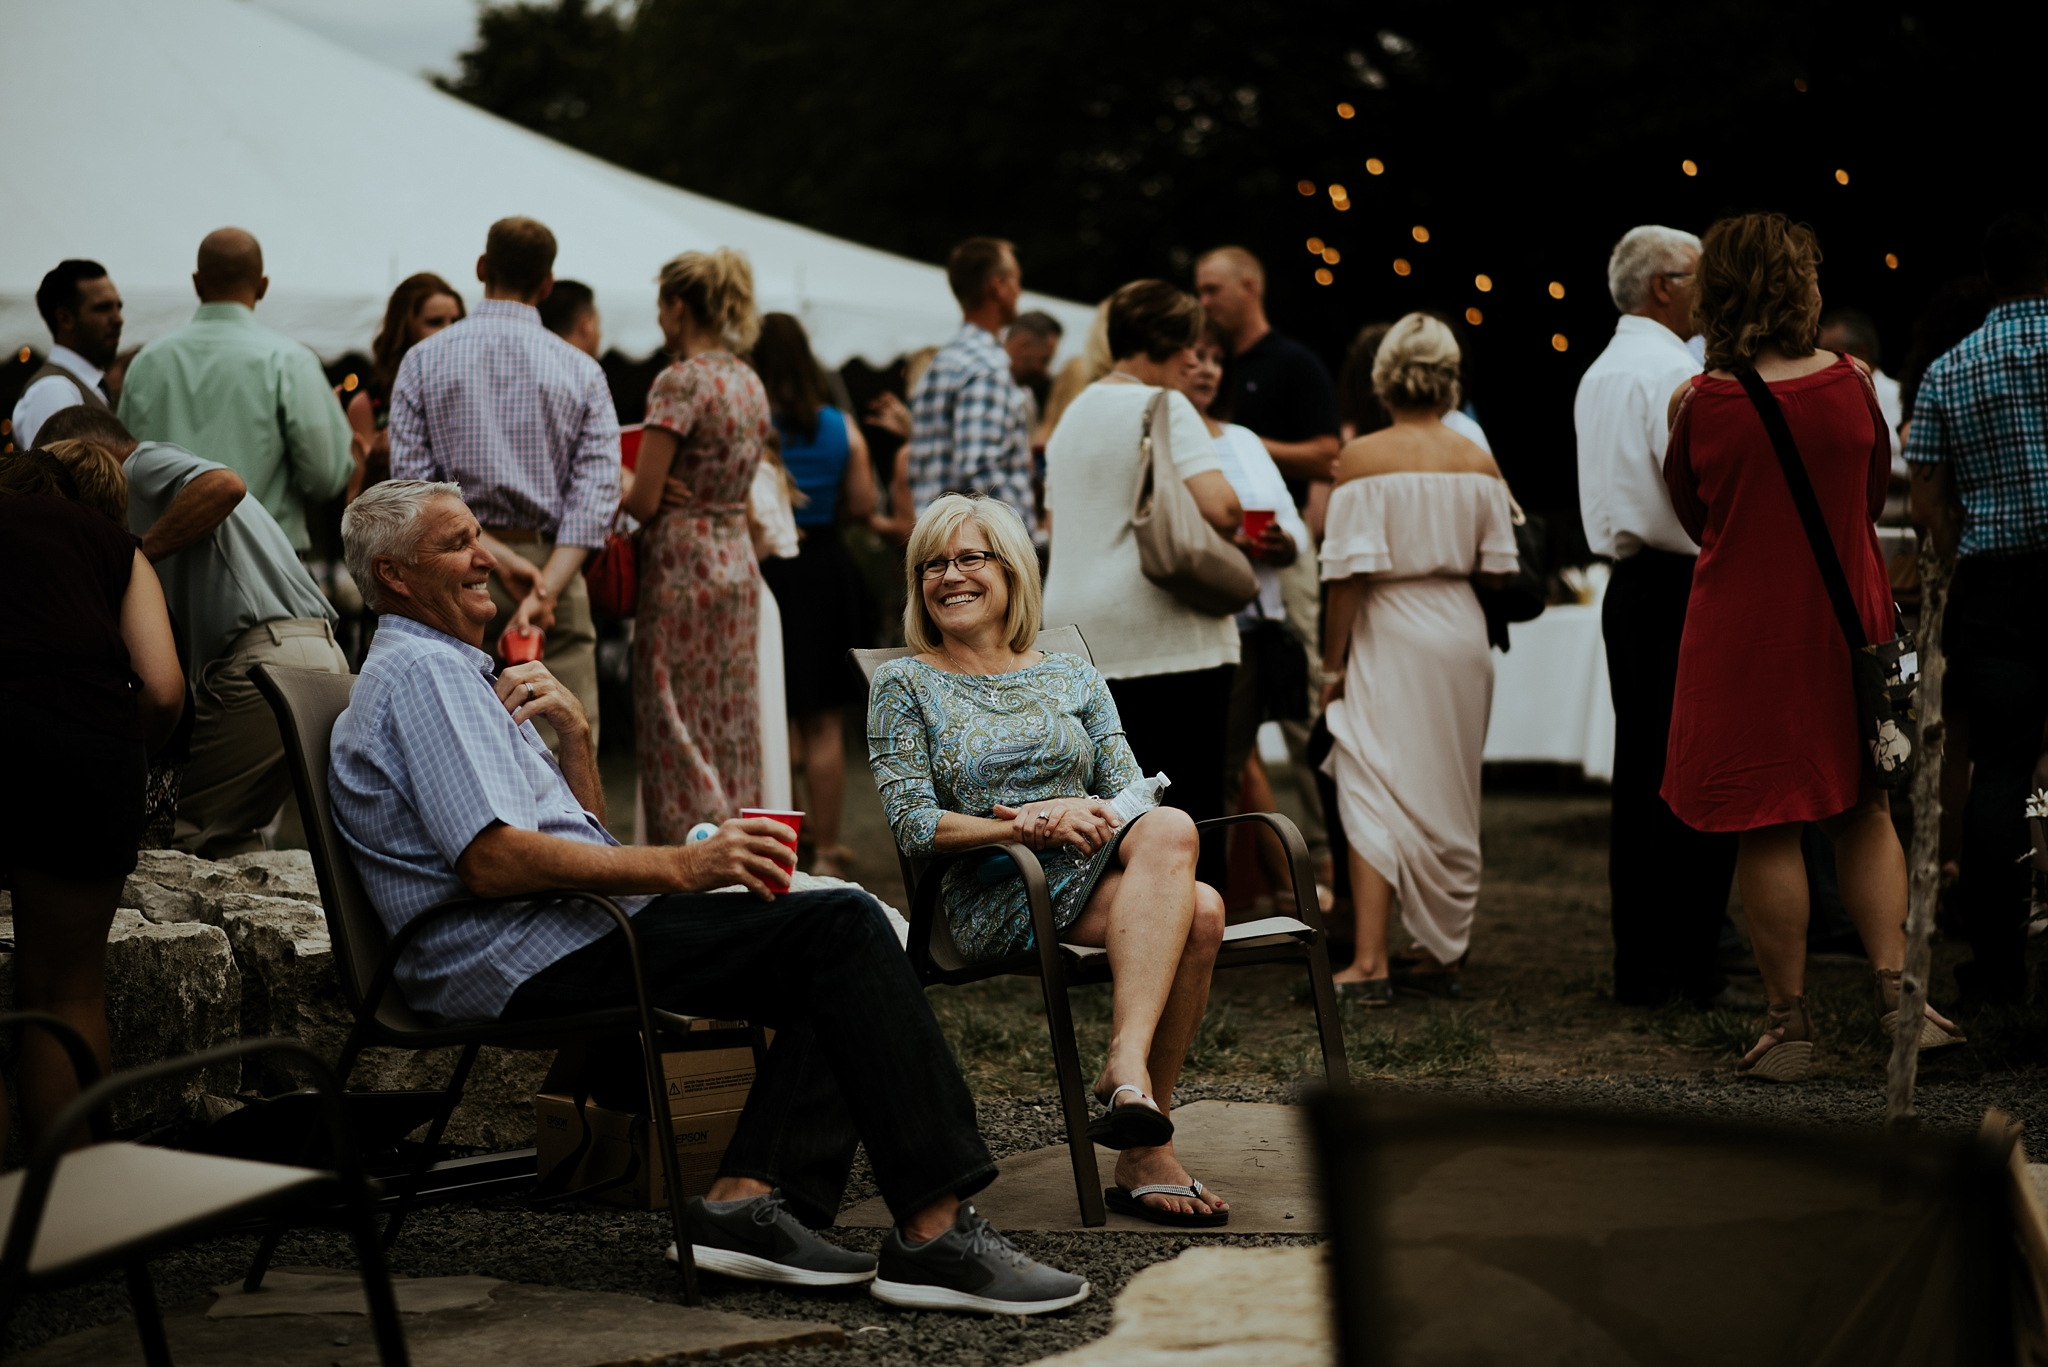 Earthy Lincoln Nebraska Outdoor Wedding with a Rustic Flair Complete with a Firework Ending by Trin Jensen Photography_0013.jpg